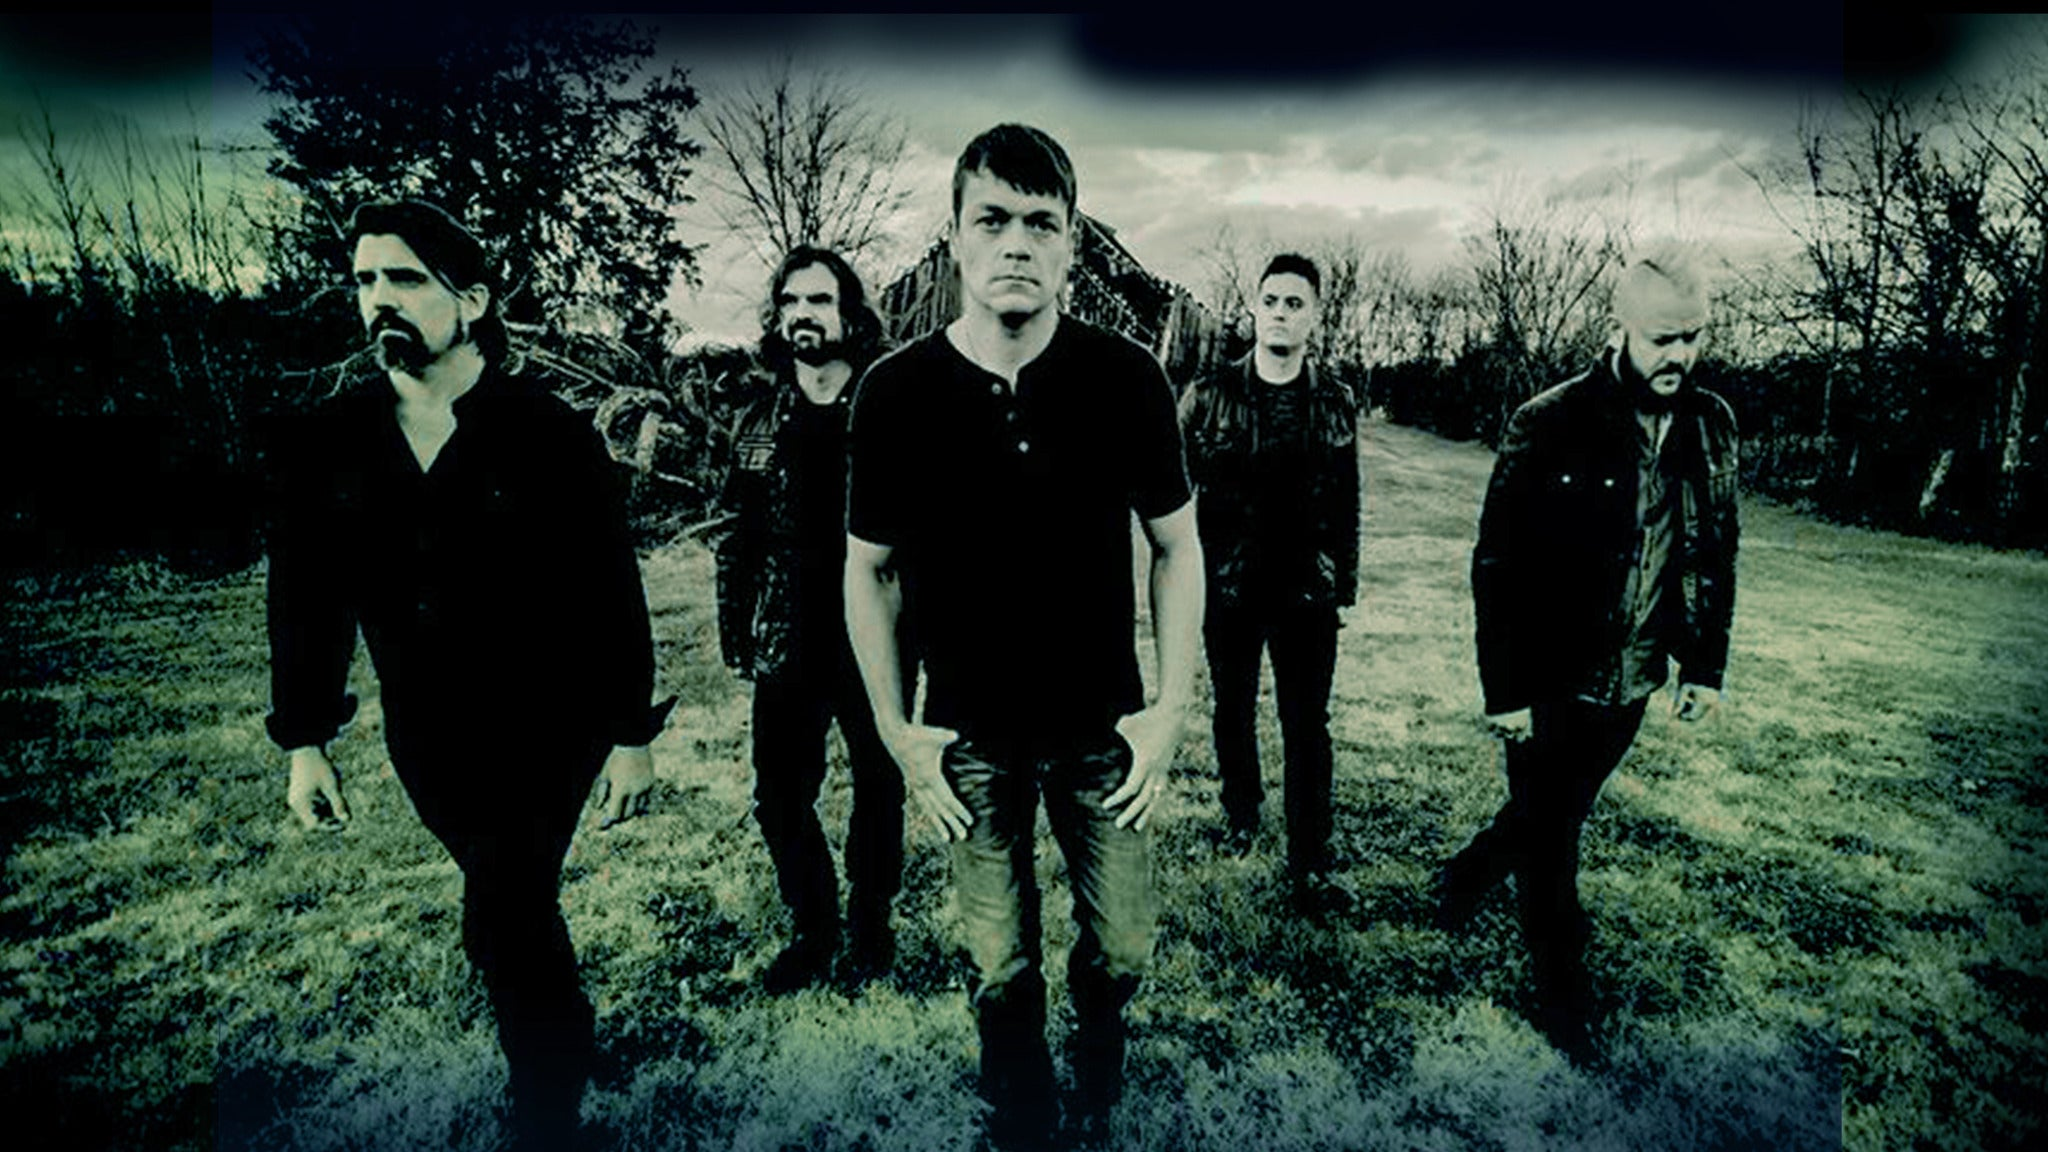 3 Doors Down - On Stage VIP Package at Stiefel Theatre